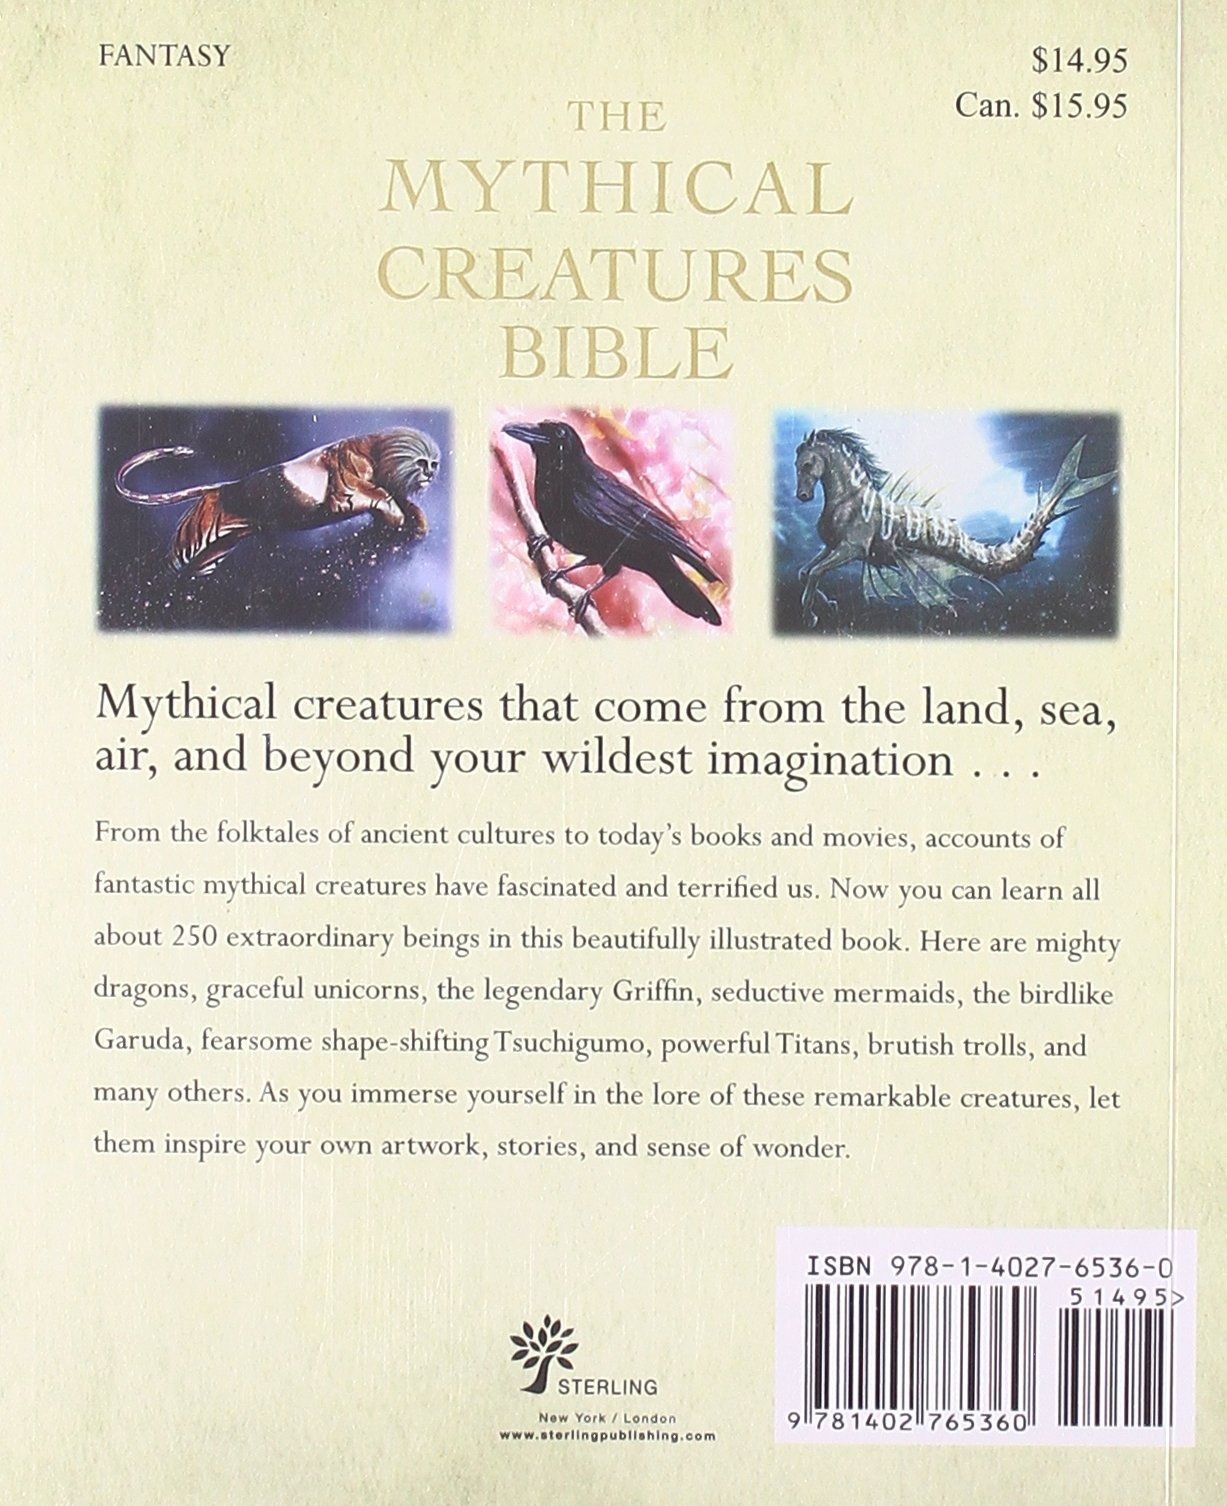 The Mythical Creatures Bible Definitive Guide To Legendary Beings Brenda Rosen 9781402765360 Books